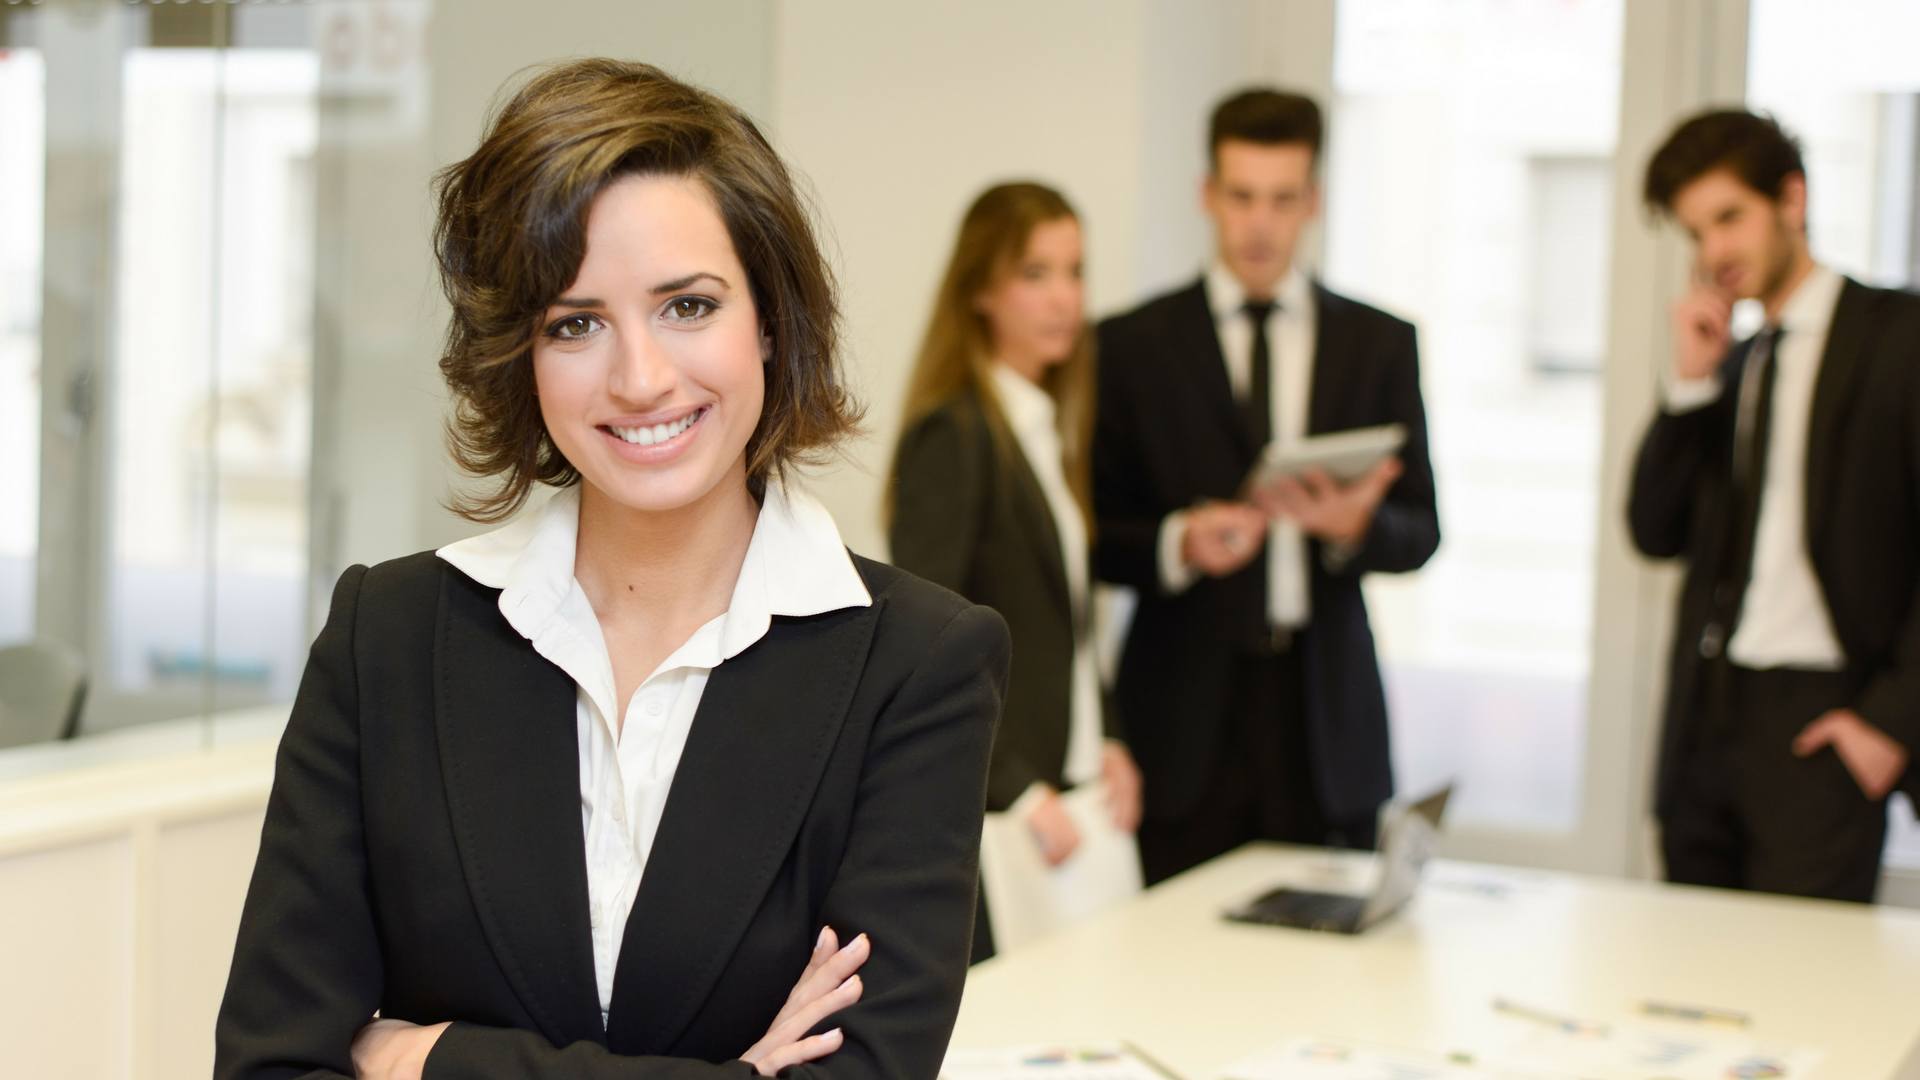 smiling executive with crossed arms